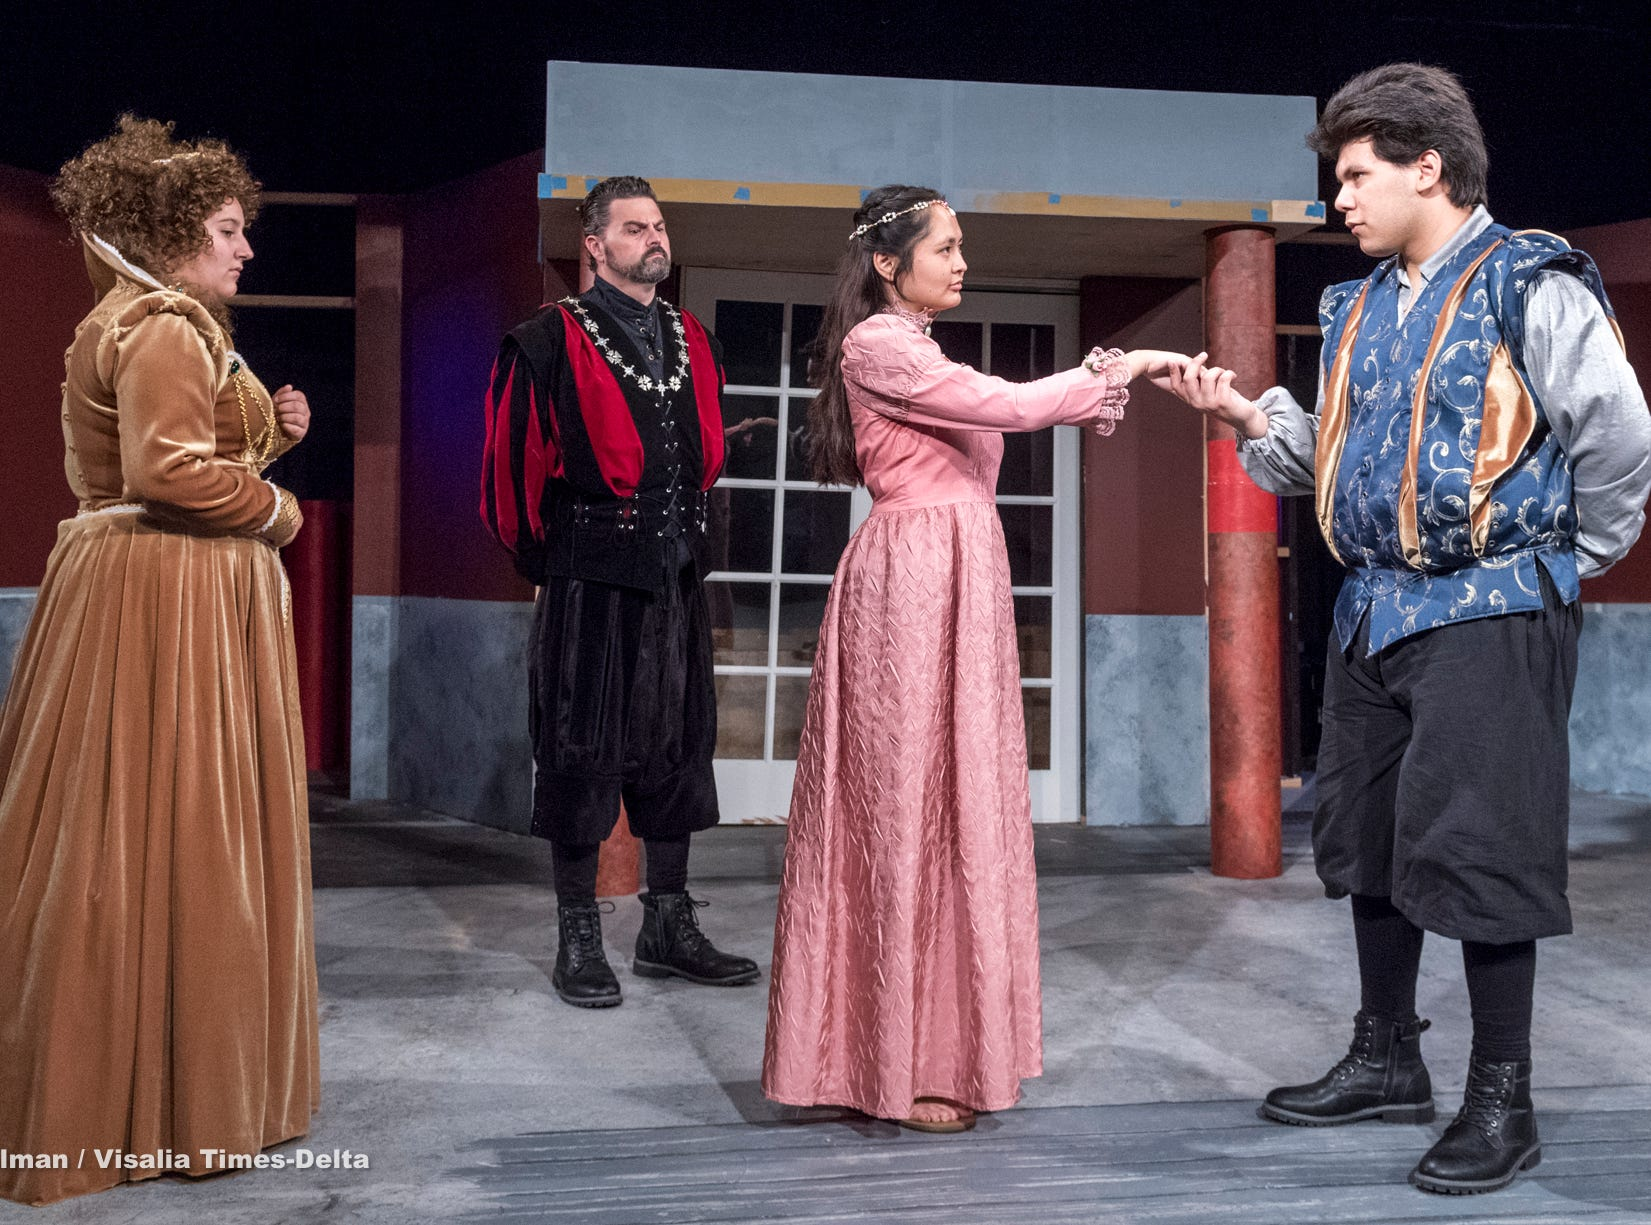 Mason Garcia, right, Isabella O'Keeffe, Michael Taber and Anyssa Vasquez rehearse for Visalia Players' production of Shakespeare in Love at the Ice House Theater on Monday, July 23, 2018.